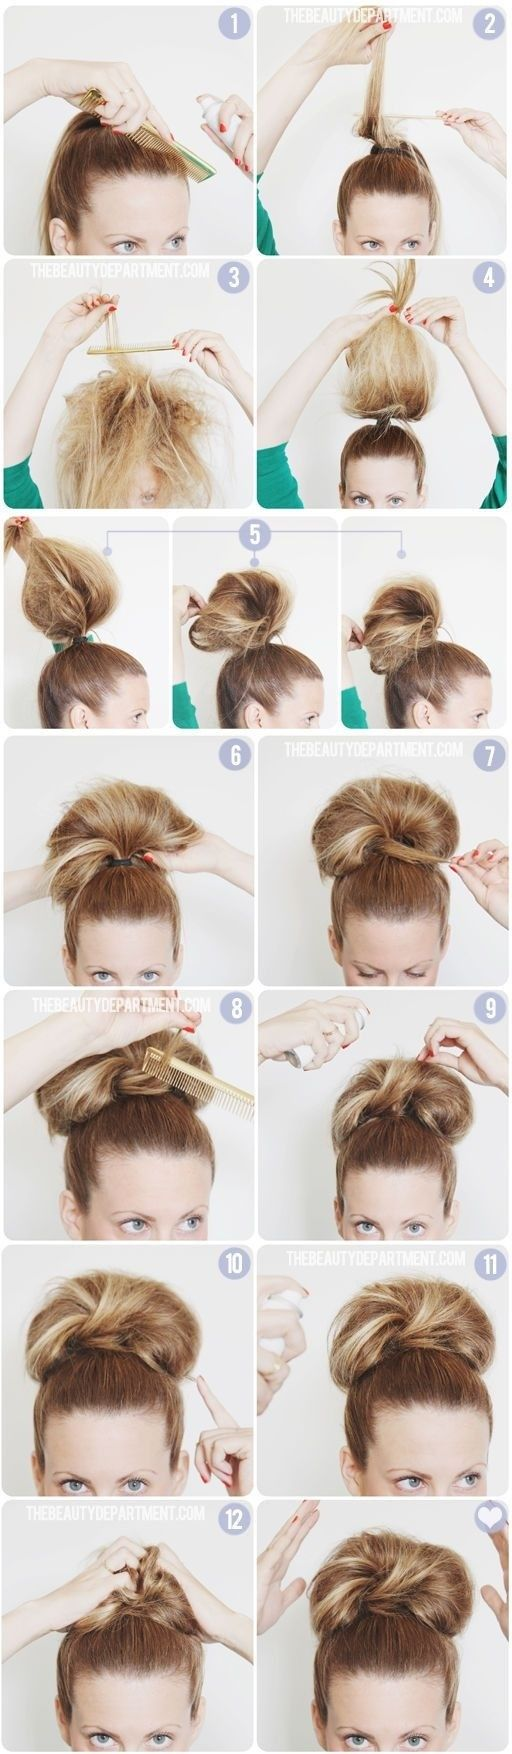 super easy updo hairstyles tutorials easy updo hairstyles